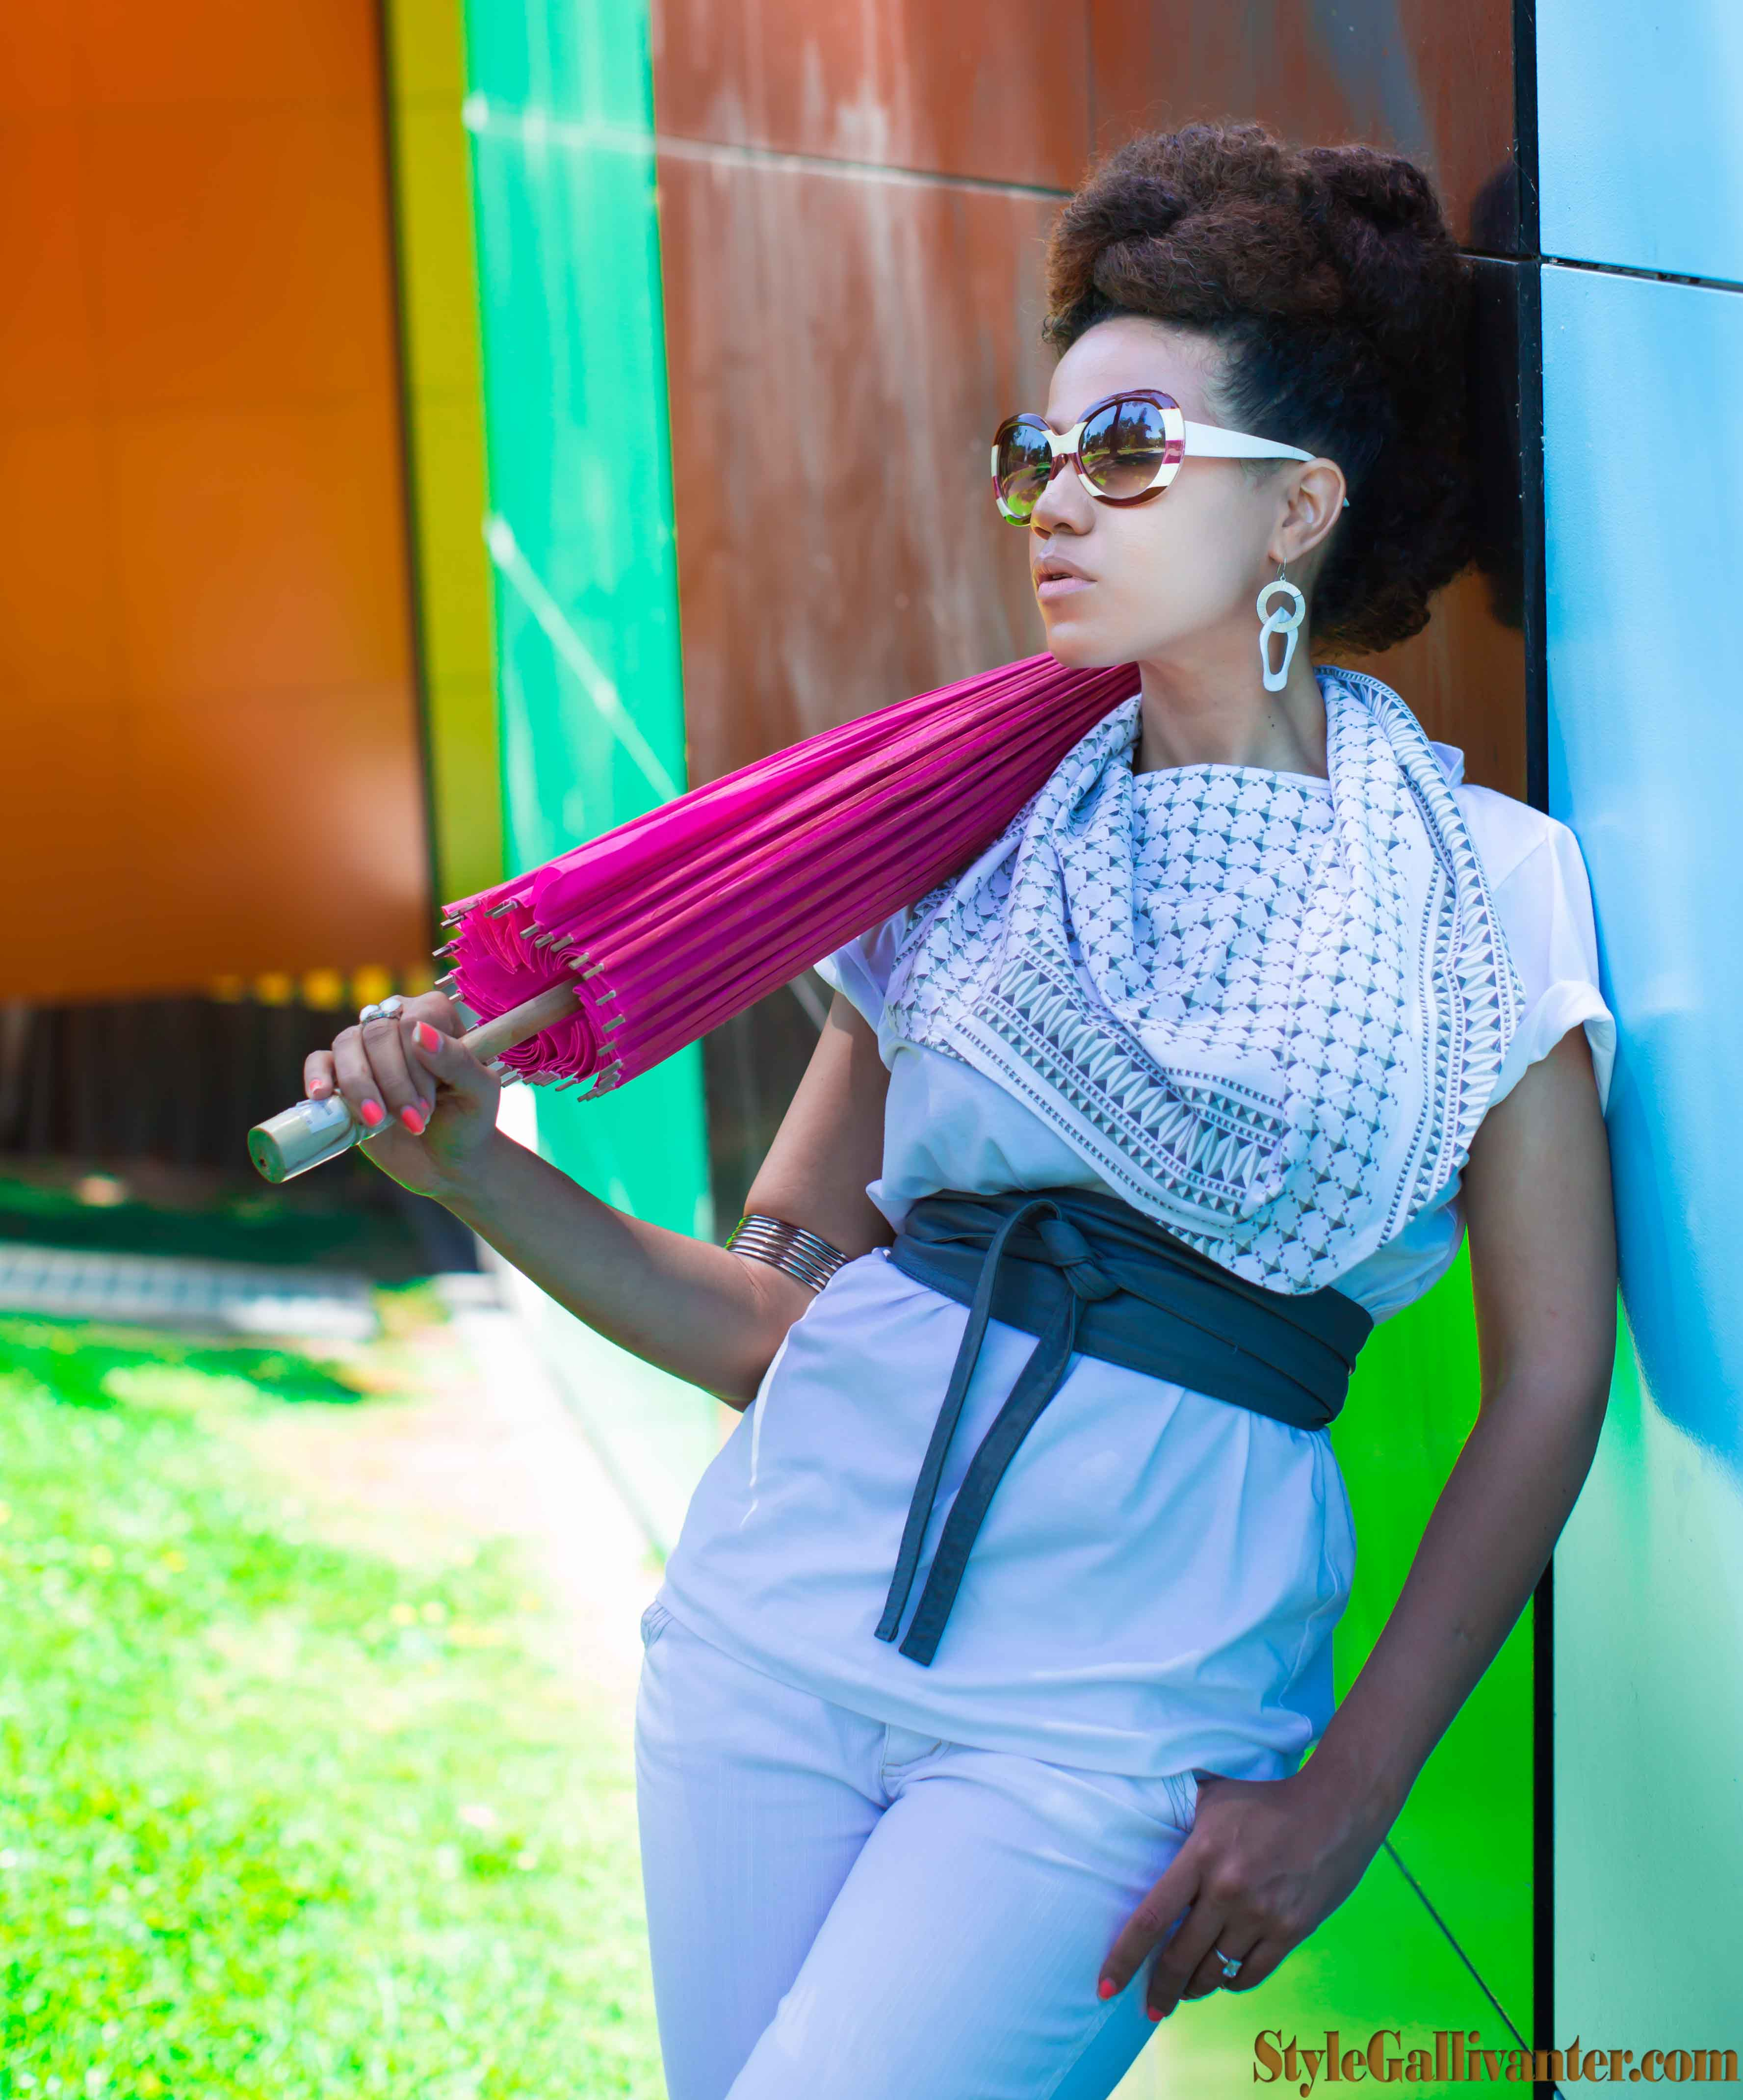 cool-afro-hairstyles_easy-natural-hairstyles_best-african-fashion-blogger_sakhino_best-personal-stylist-melbourne_best-colour-blocking_best-online-fashion-magazine_cover-girl-editorial_unique-fashion-bloggers-melbourne-8